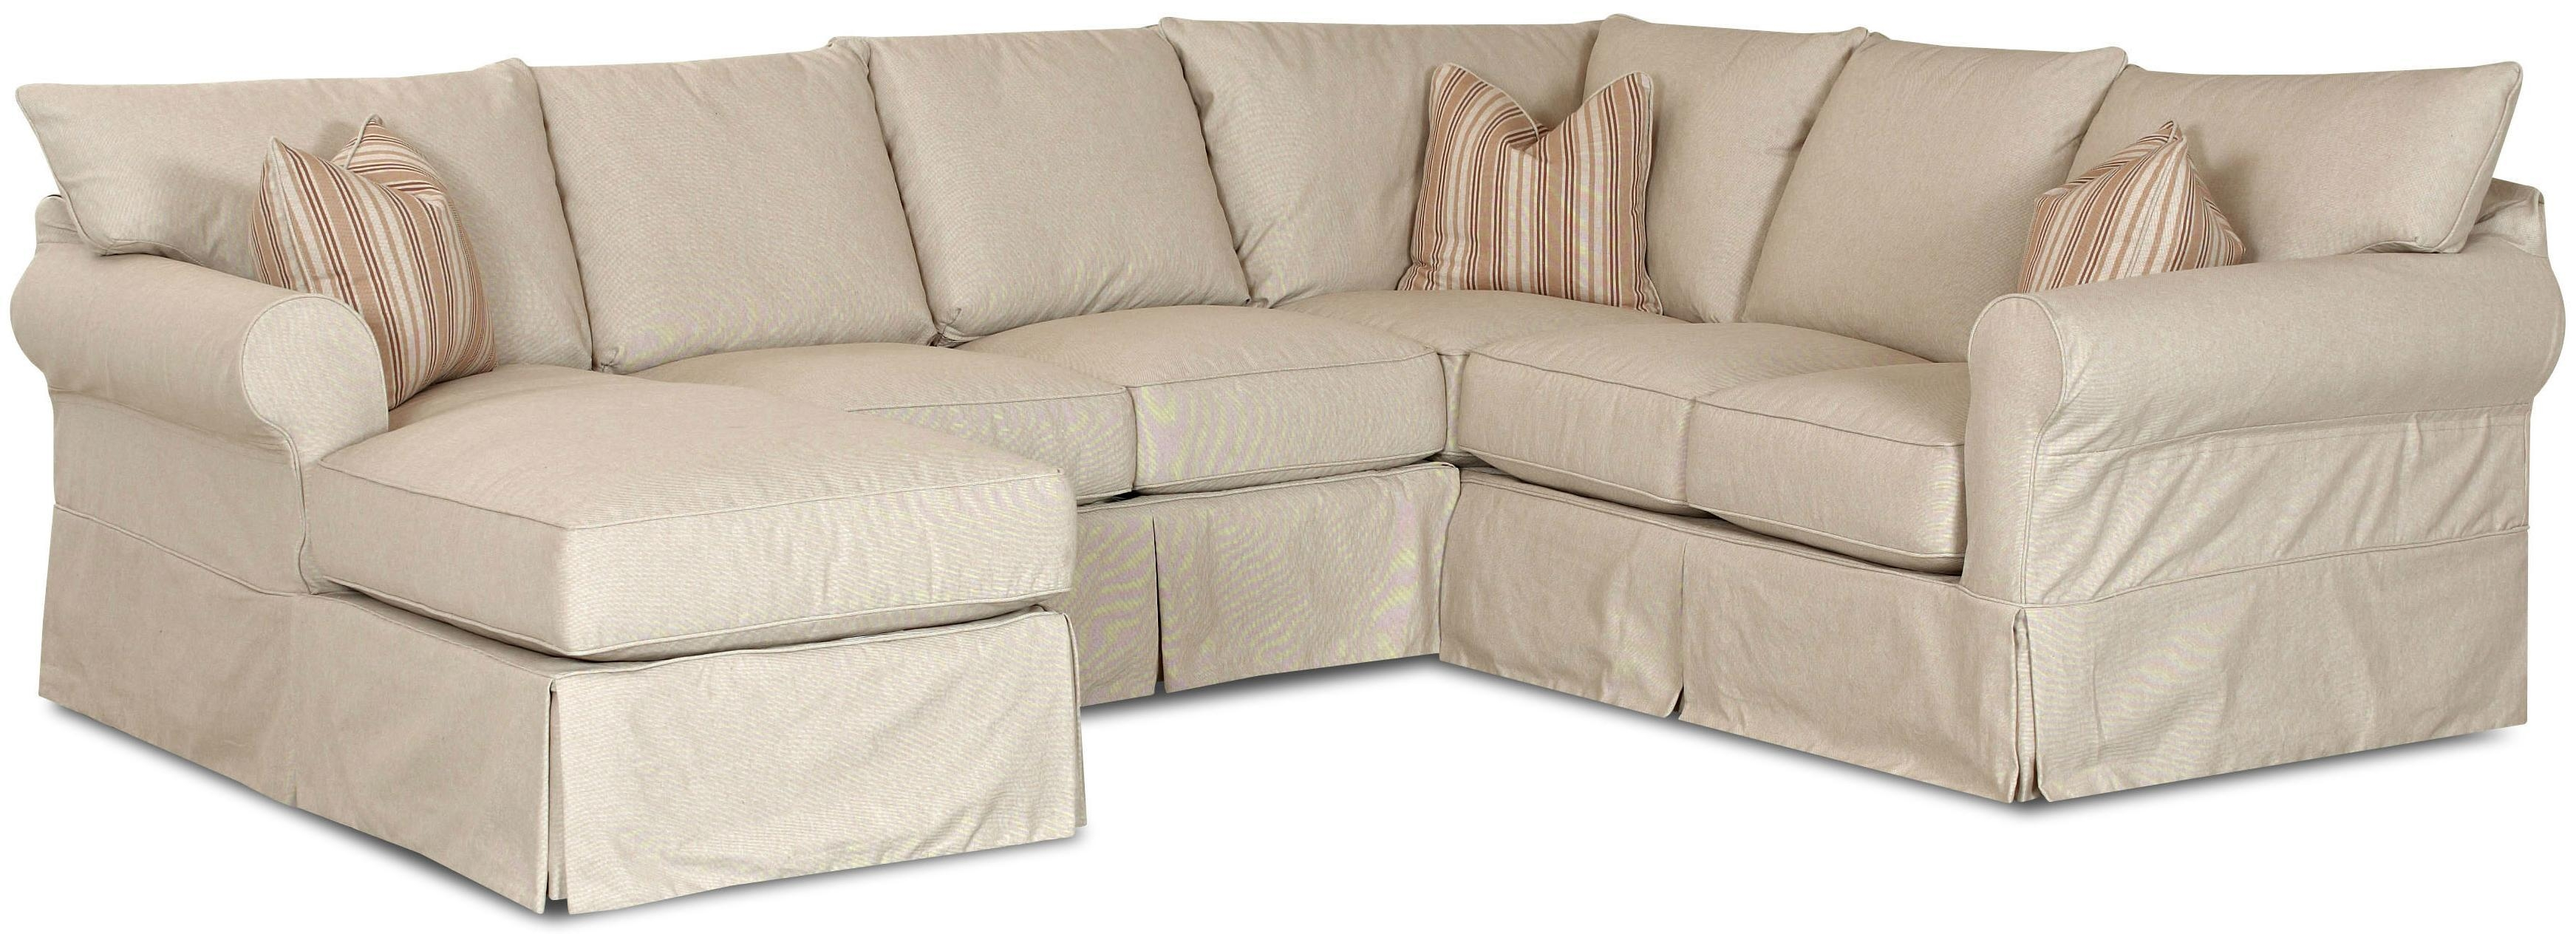 Featured Image of 3 Piece Sectional Sofa Slipcovers